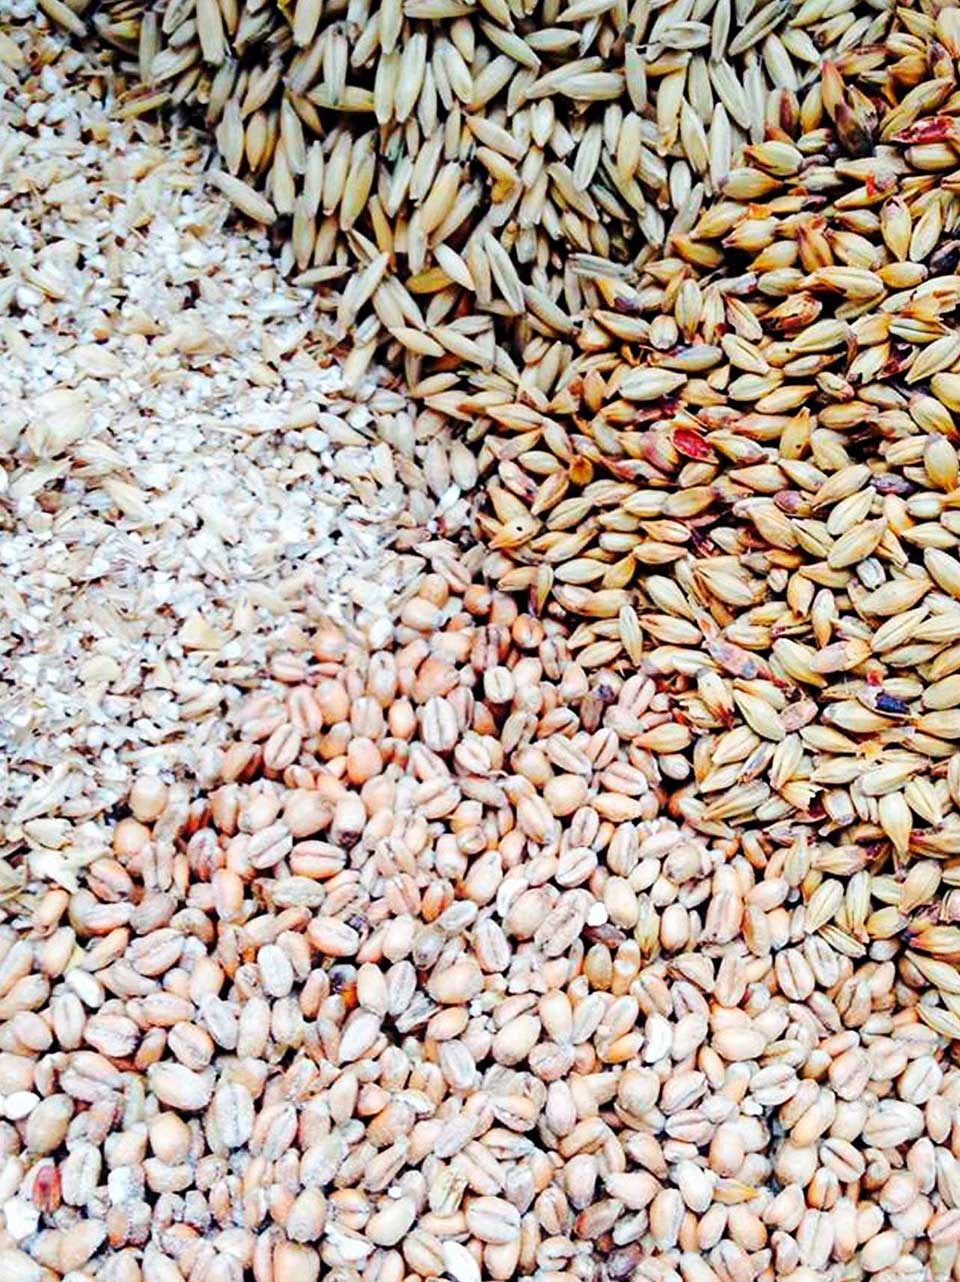 Grains within Loomshed